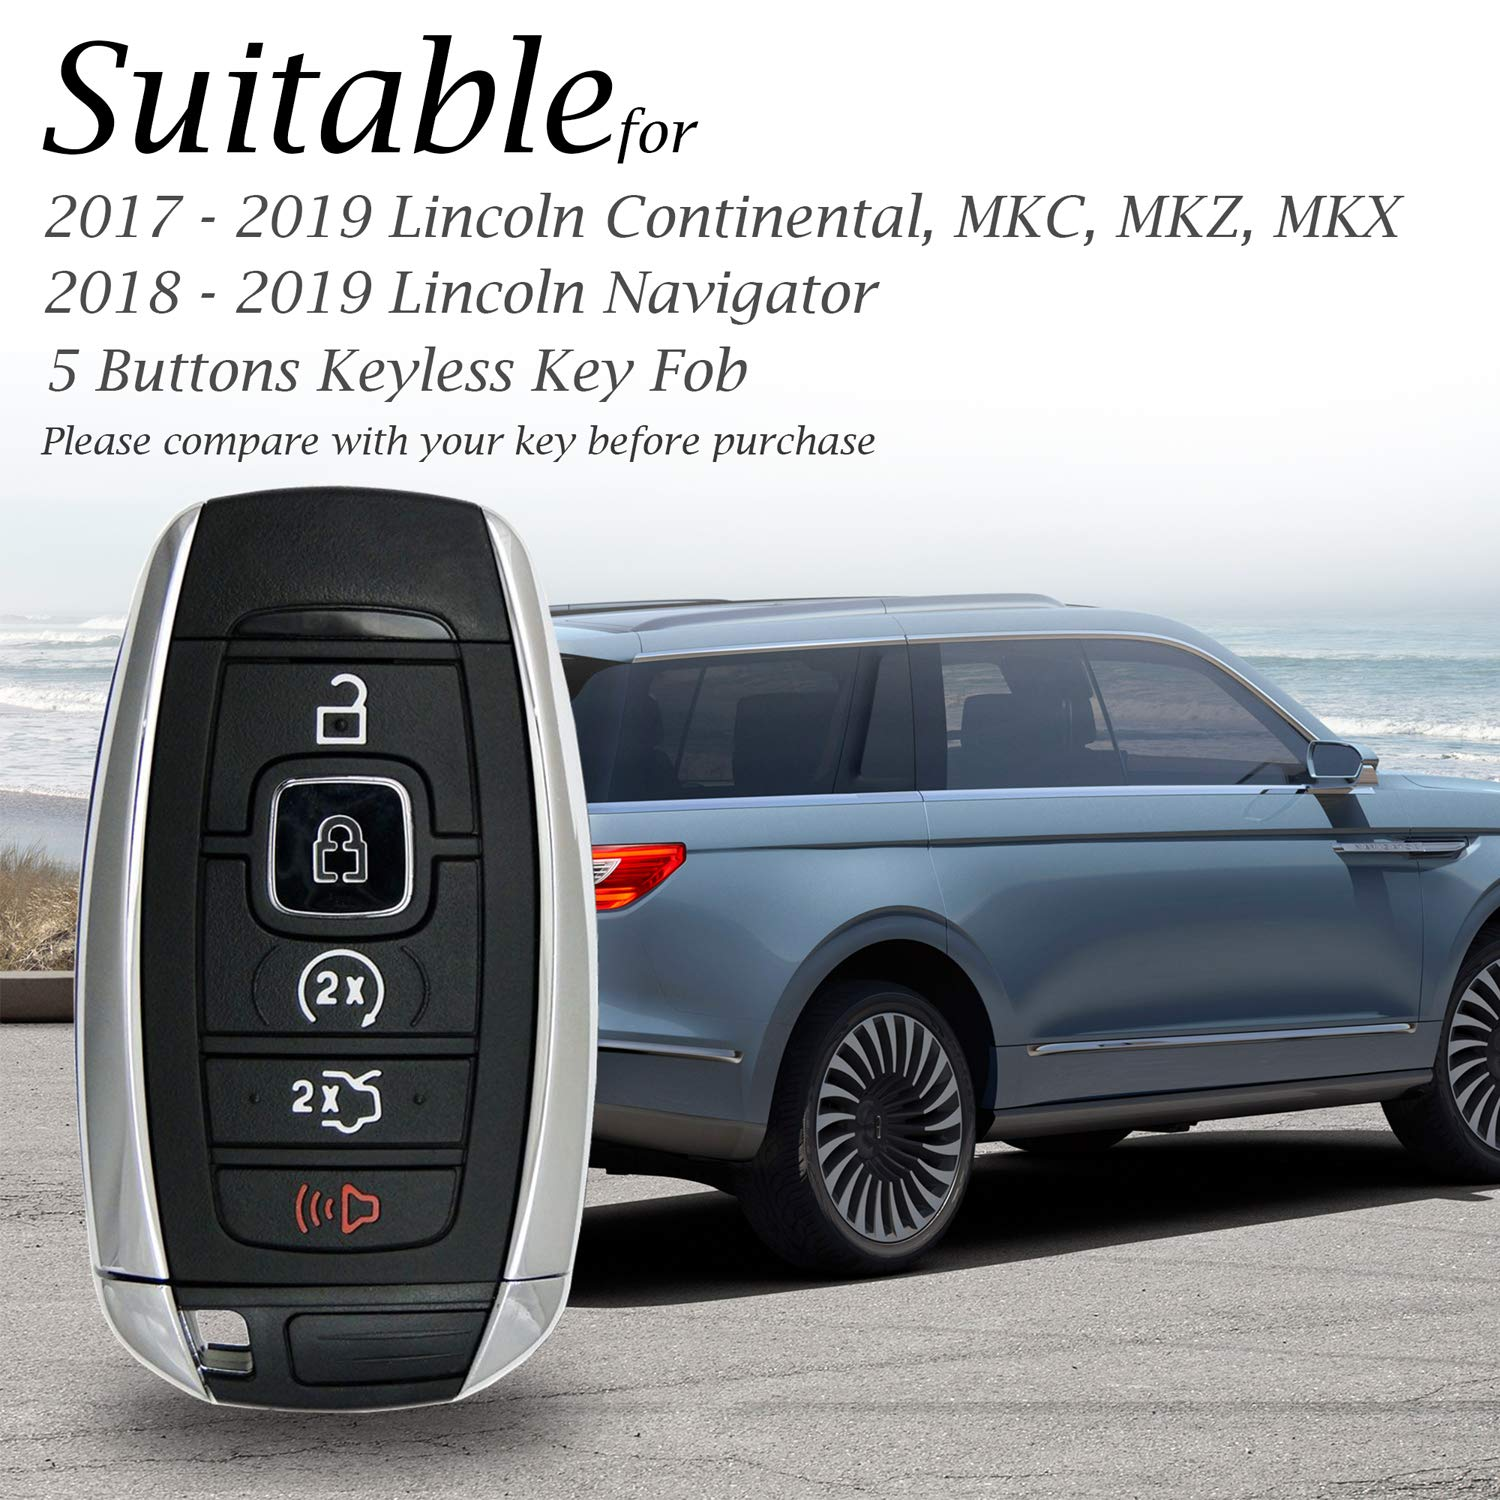 MKX 5 Buttons, Black//Red MKC Vitodeco Genuine Leather Keyless Smart Key Fob Case Cover Protector with Leather Key Chain for 2017-2019 Lincoln Continental 2018-2019 Lincoln Navigator MKZ